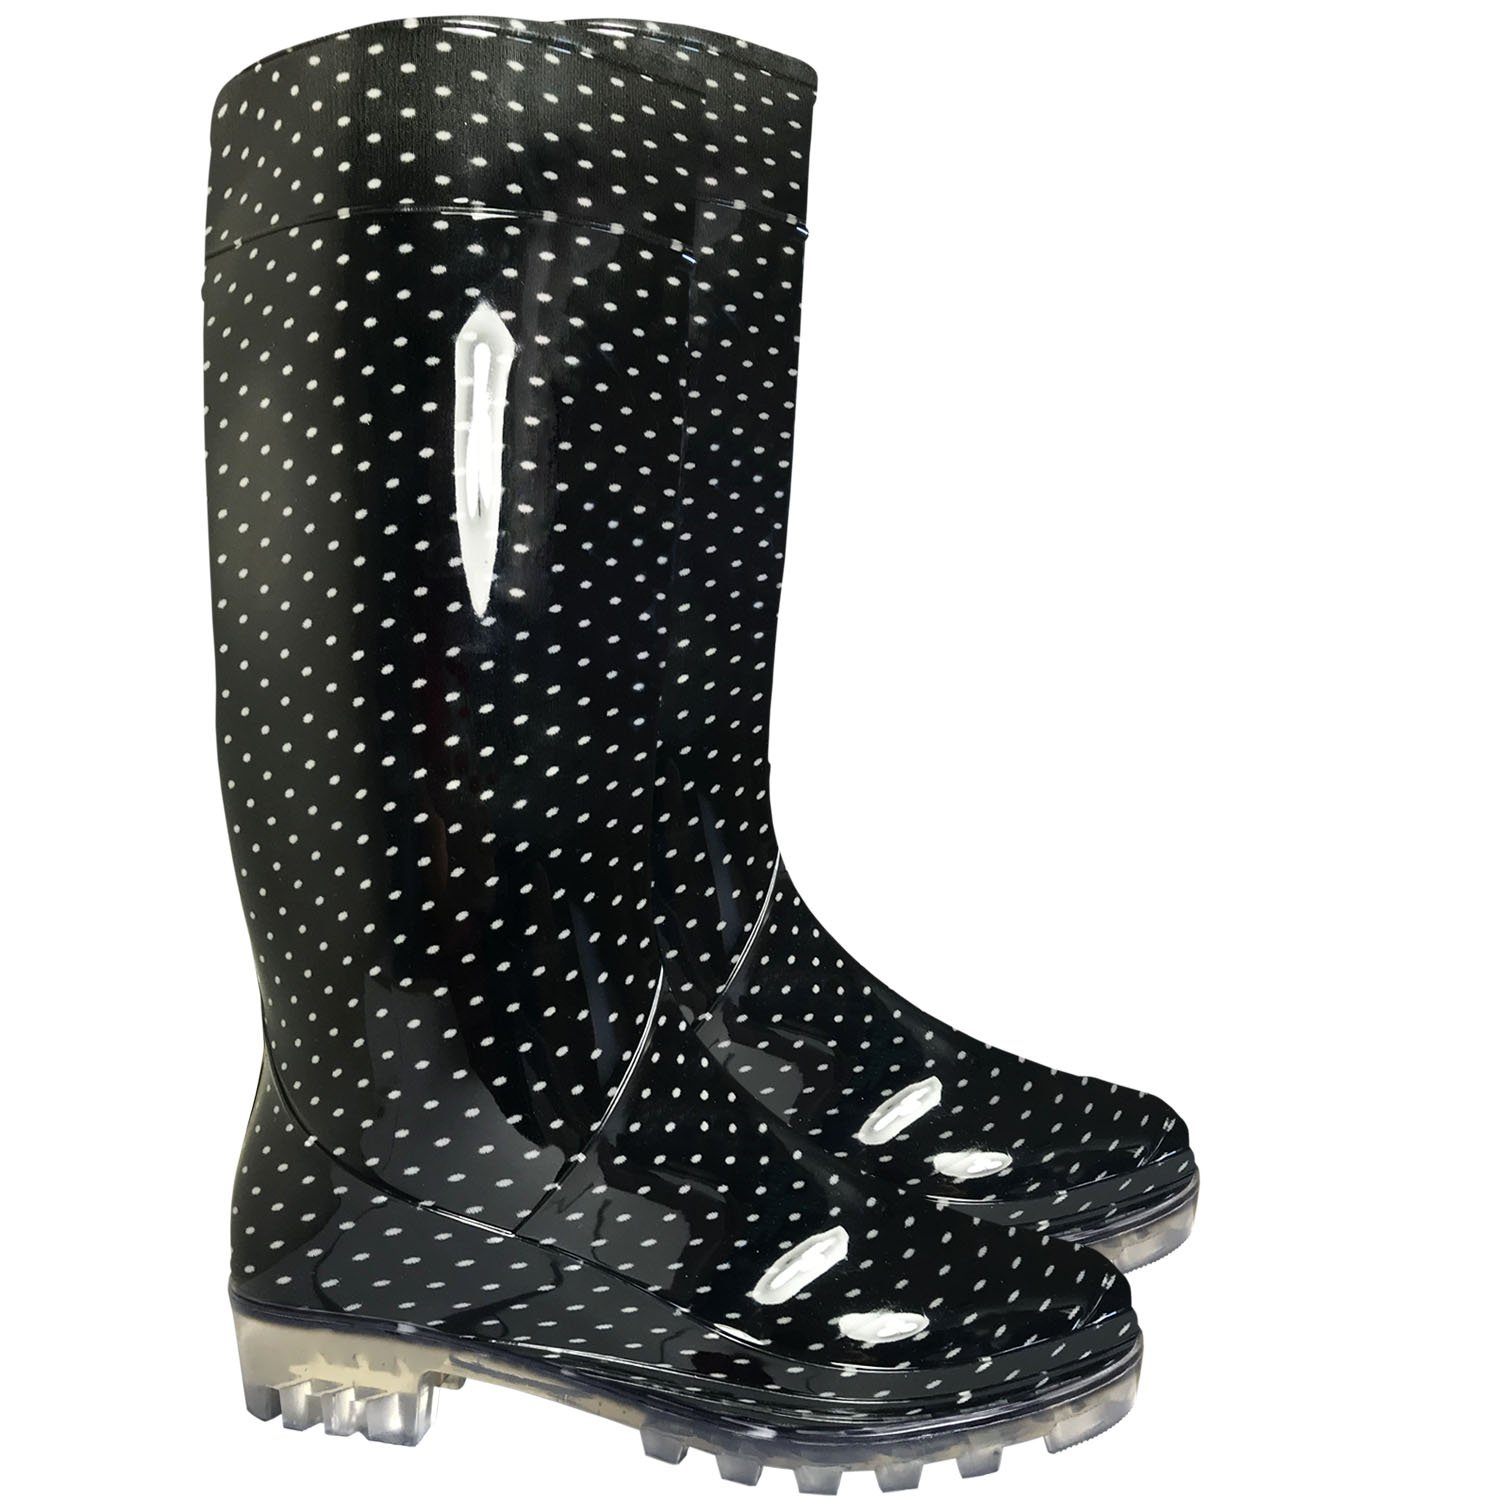 eb4e5a3cea1 SUGAR ISLAND Ladies Womens Wellies Snow Rain Festival Wellington Boots Size  UK 4, 5, 6, 7, 8